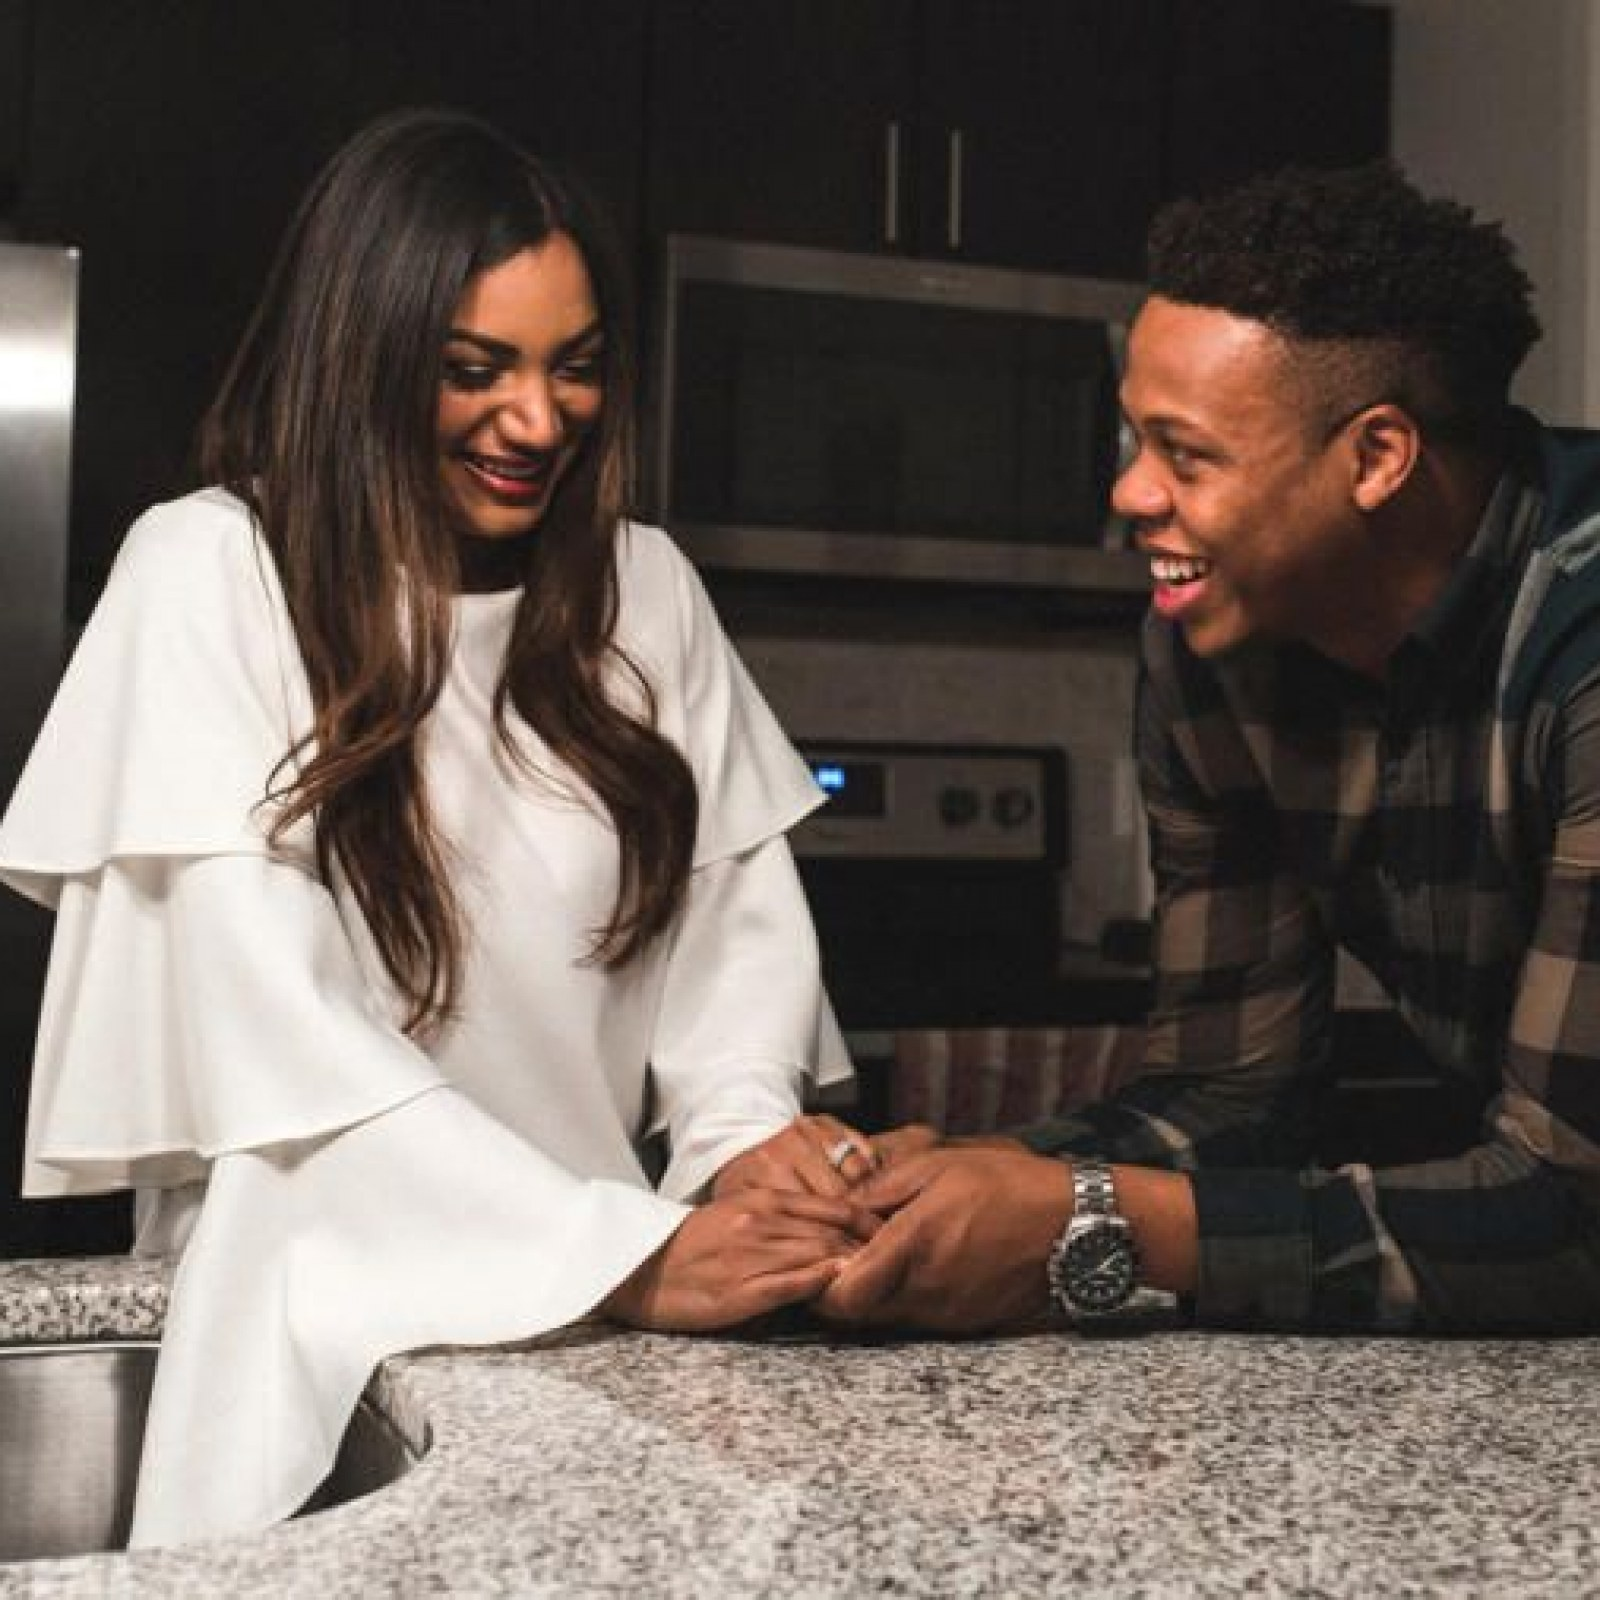 90bf84917 Are 'Married at First Sight' Stars Mia Bally and Tristan Thompson Still  Together?